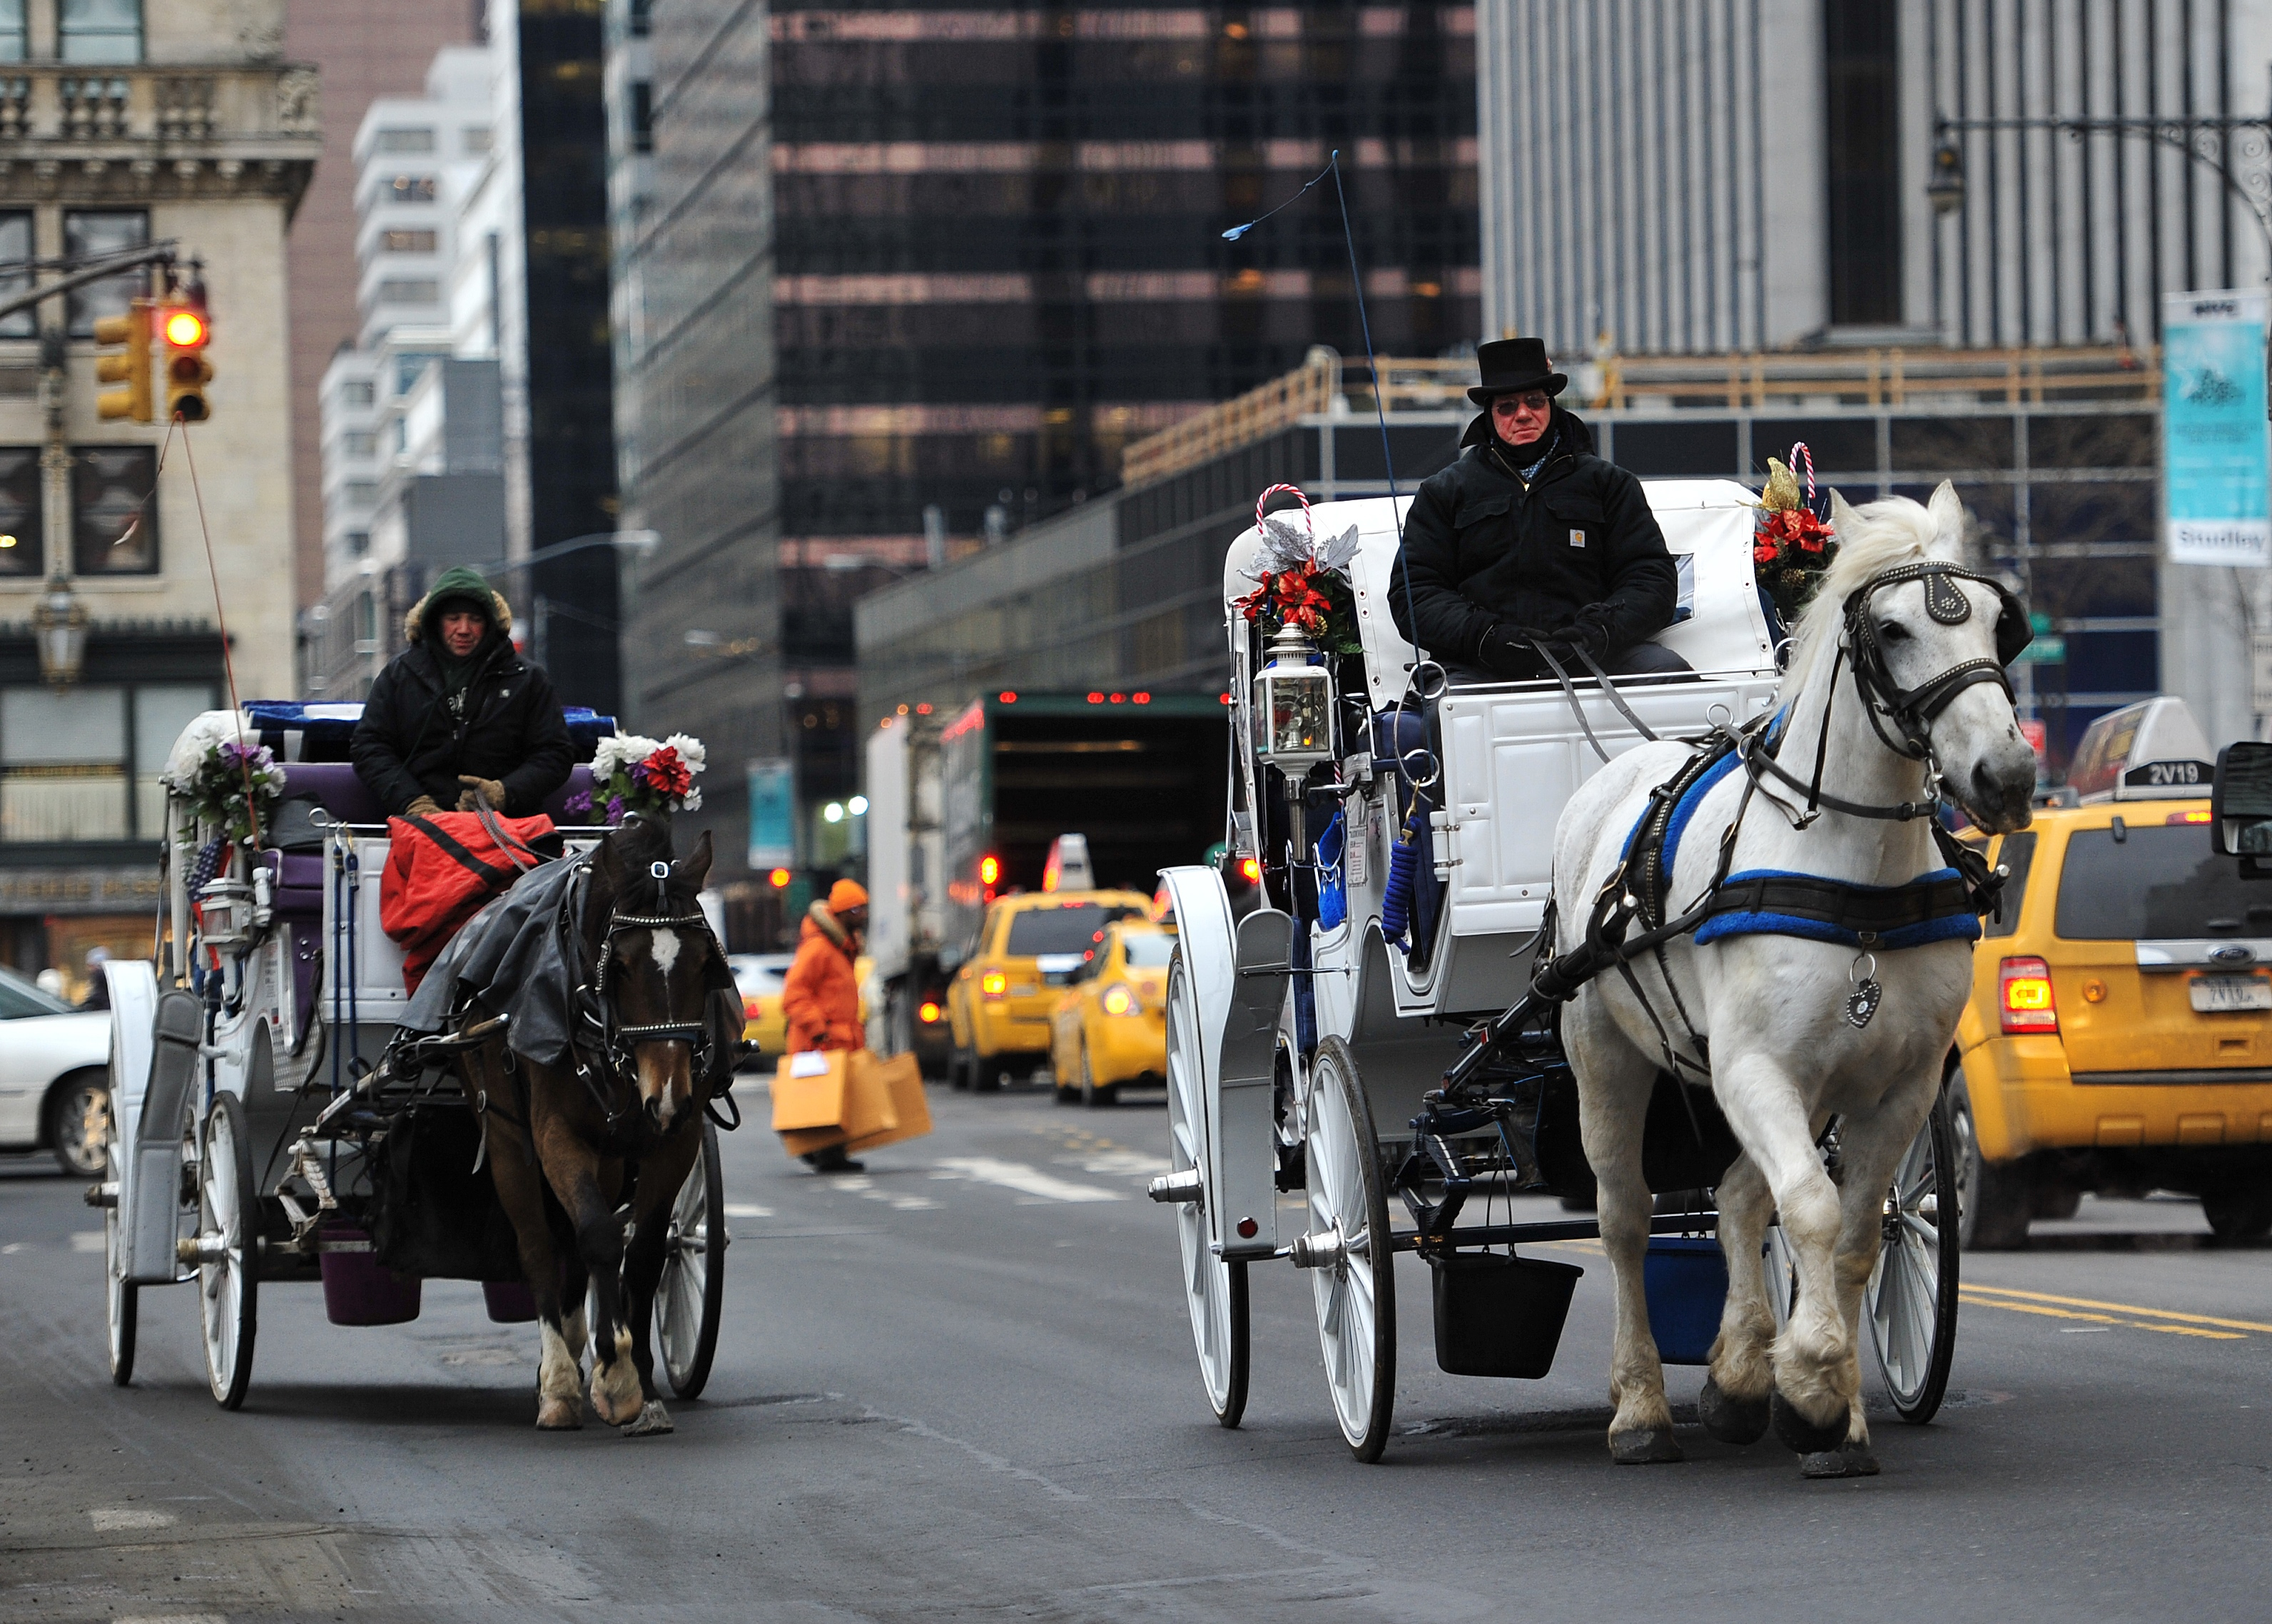 Two horse-drawn carriages are ridden on Central Park West on January 2, 2014.  (STAN HONDA/AFP/Getty Images)